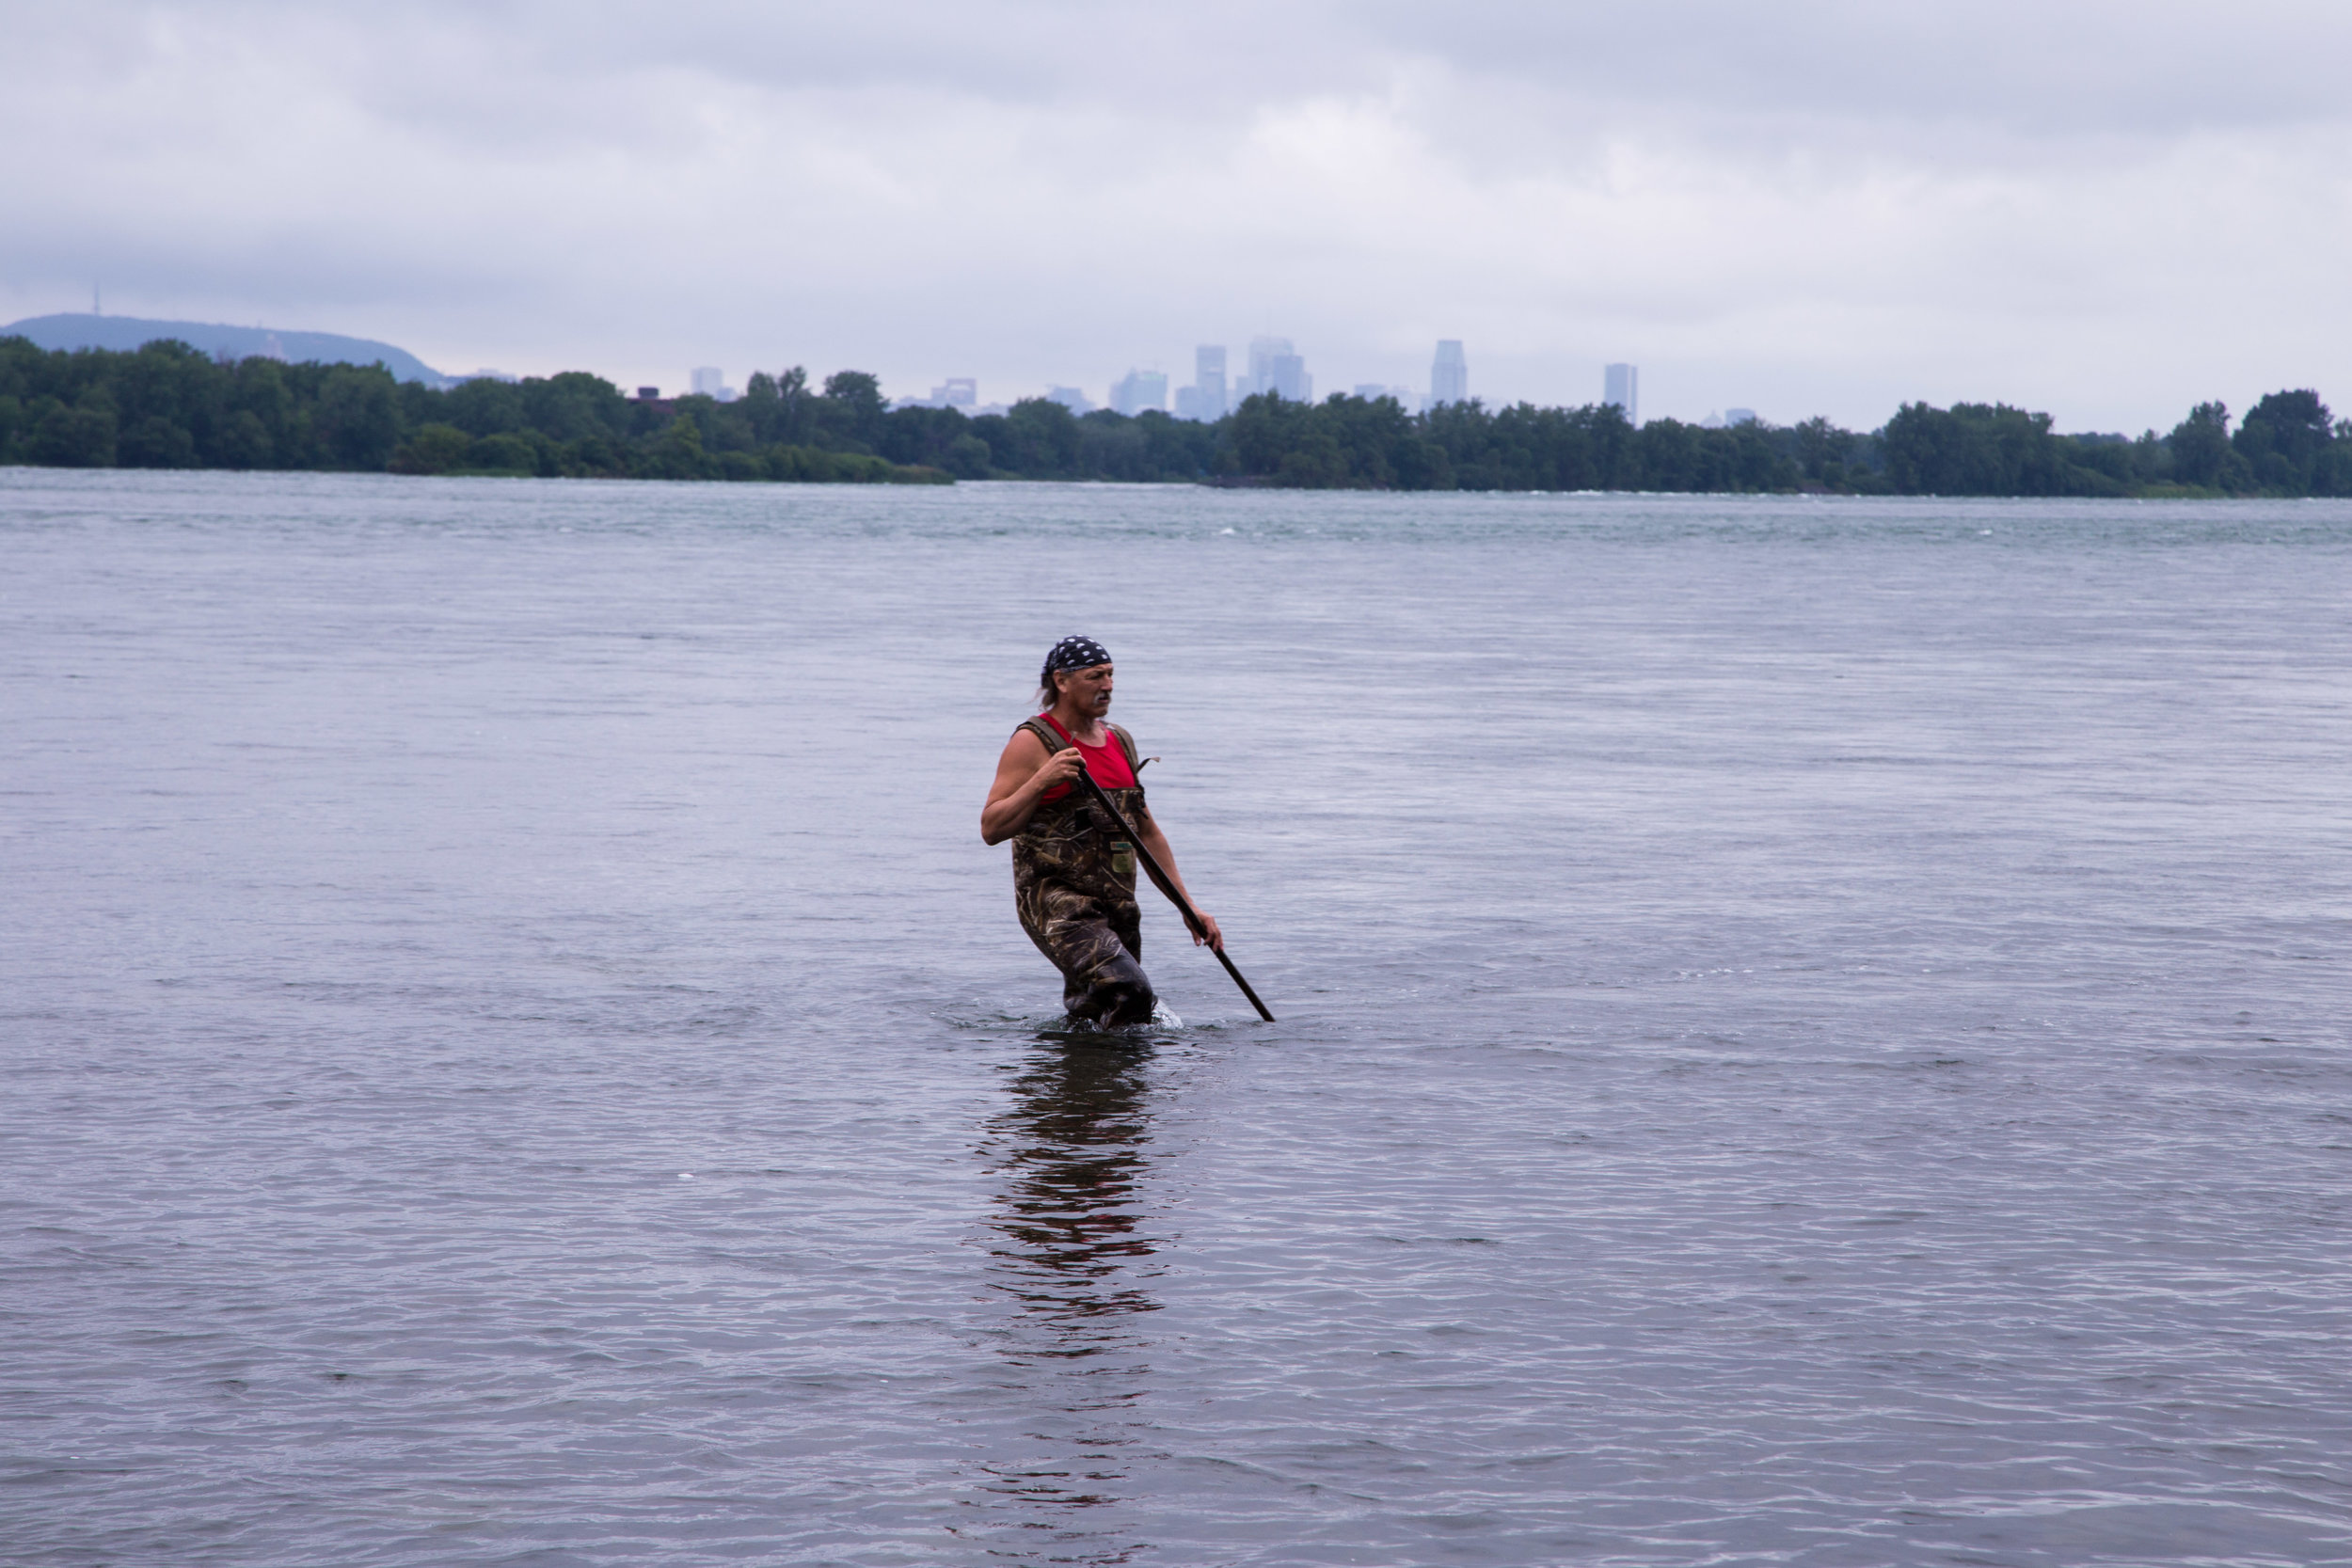 Dirt McComber spearfishing in the St. Lawrence River.